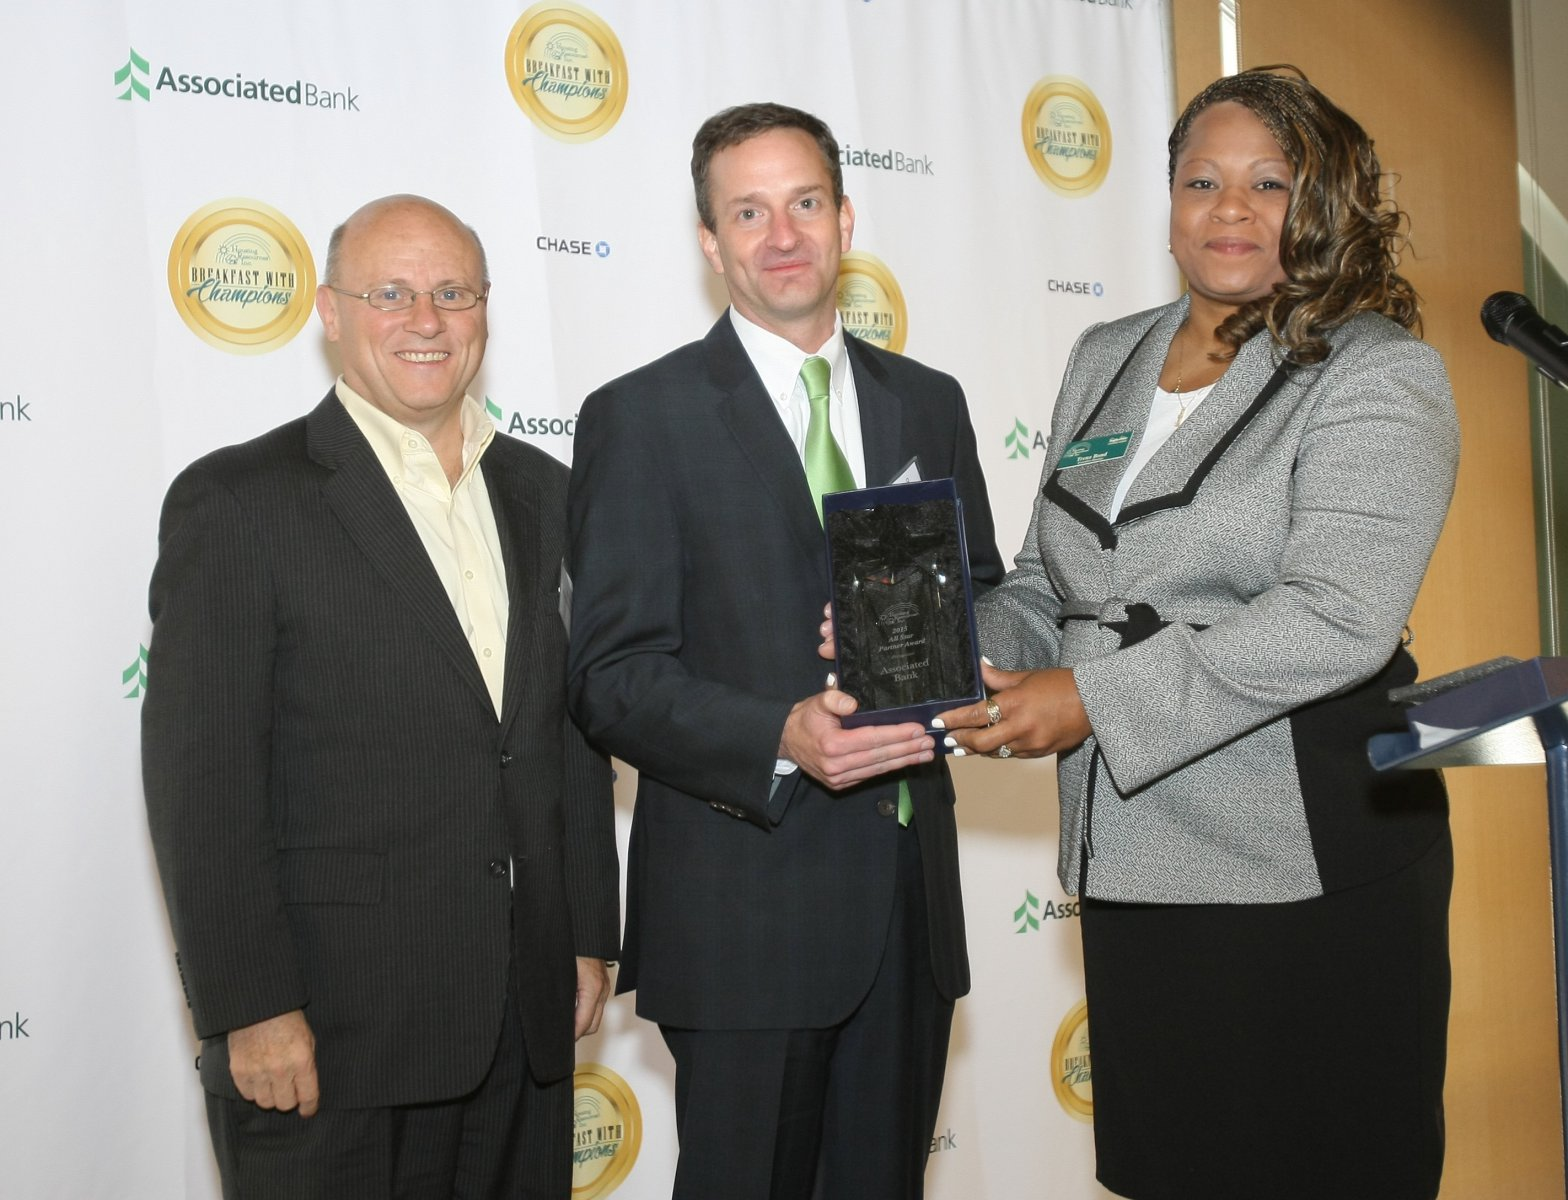 """NeighborWorks America President and CEO Paul Weech, Associated Bank Executive Vice President and Chief Marketing Officer Christopher Piotrowski, and Housing Resources, Inc. Executive Director Trena Bond at the Housing Resources, Inc. """"Breakfast with Champions"""" event"""